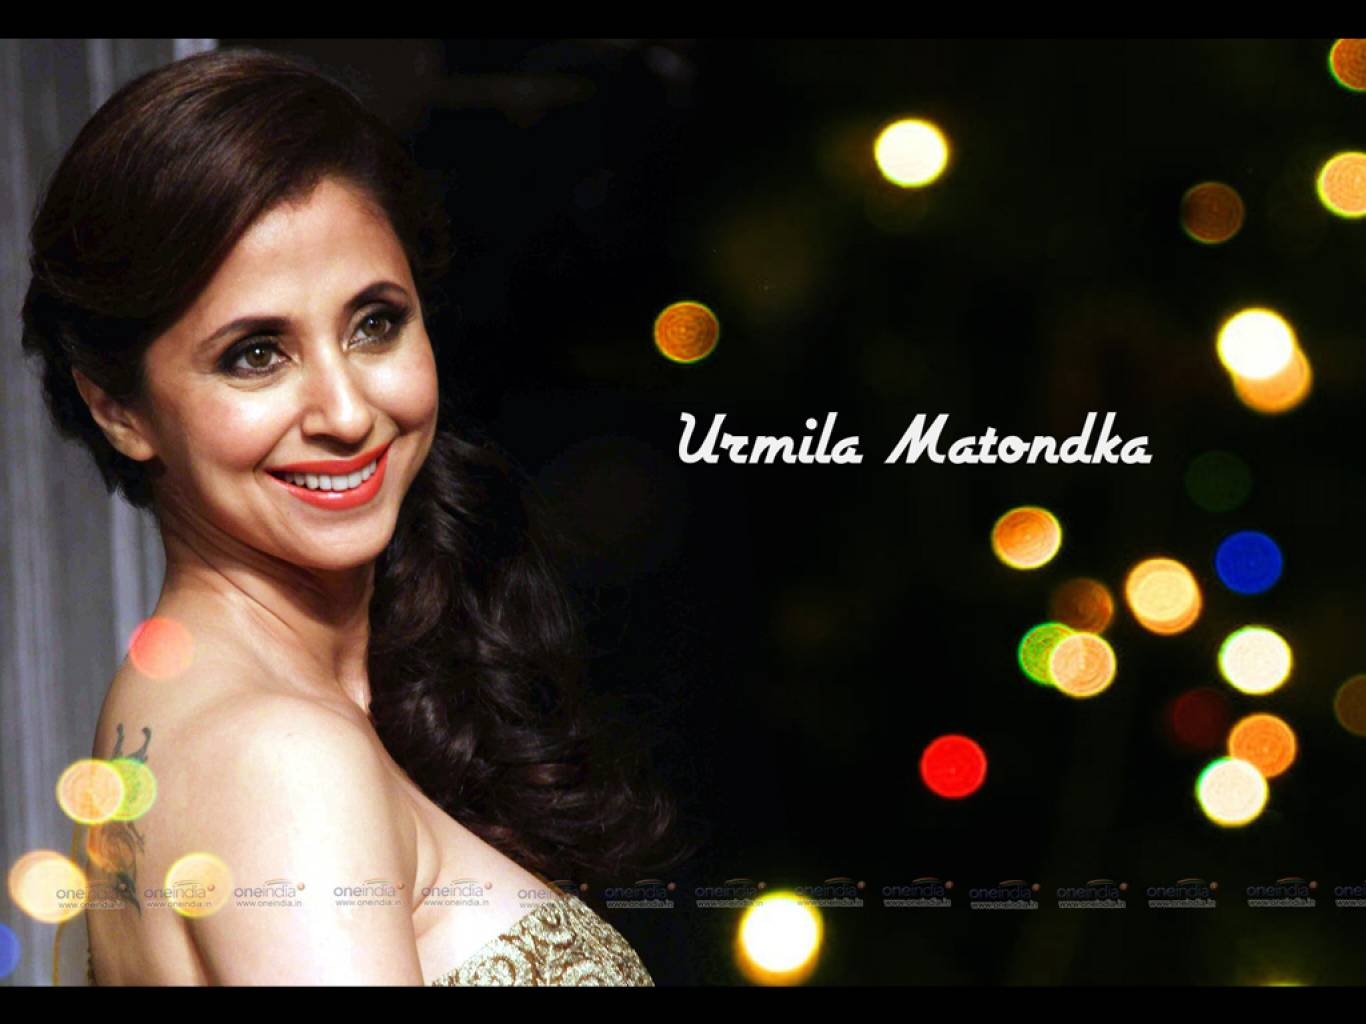 Urmila Matondkar Wallpapers